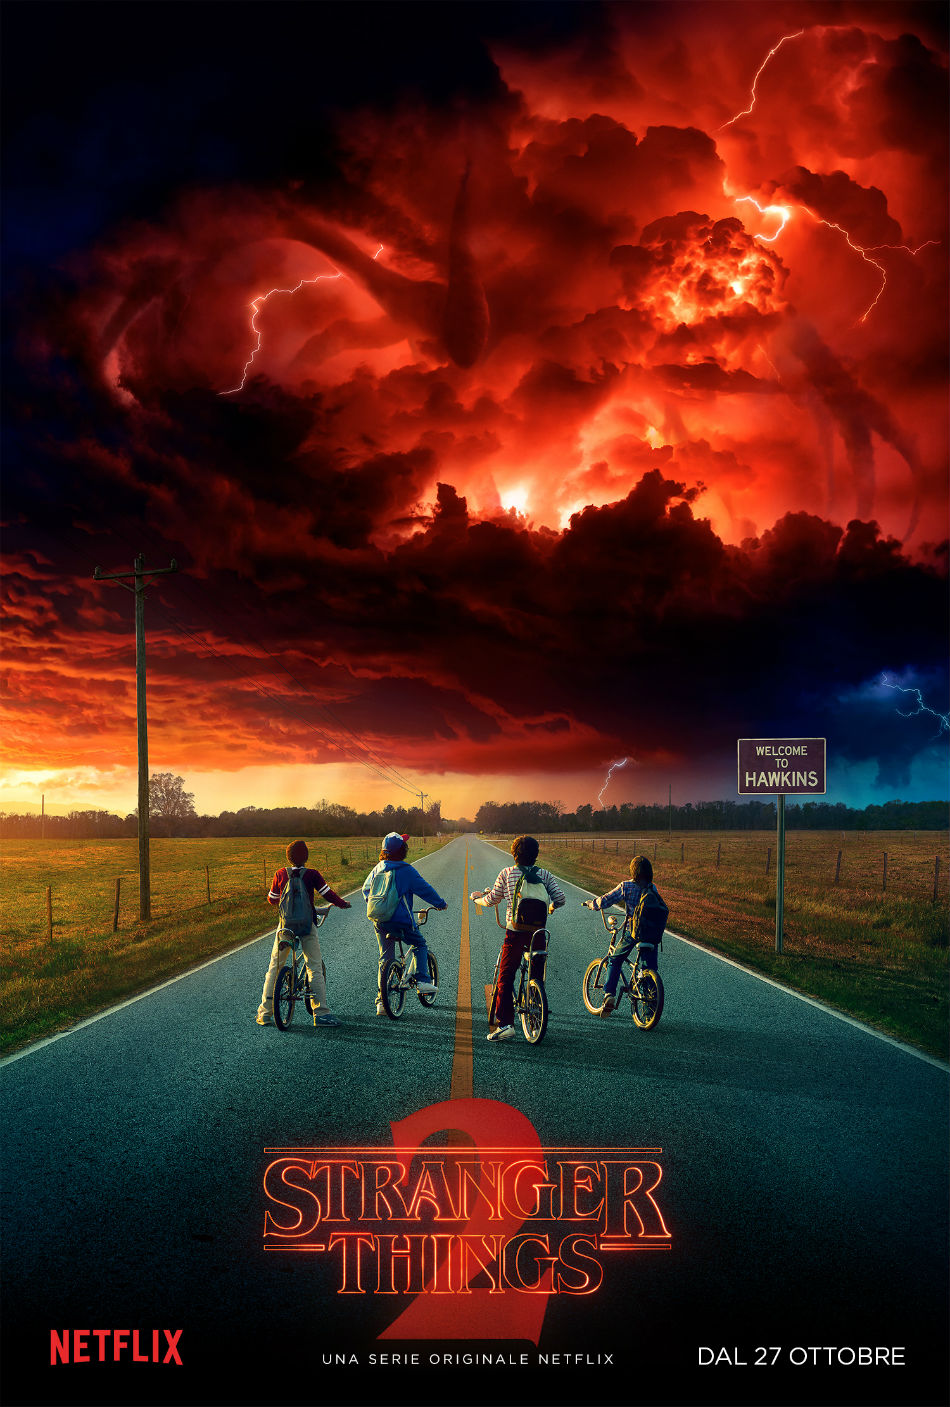 Stranger Things 2 - Stranger Things 2 ha finalmente una data ufficiale